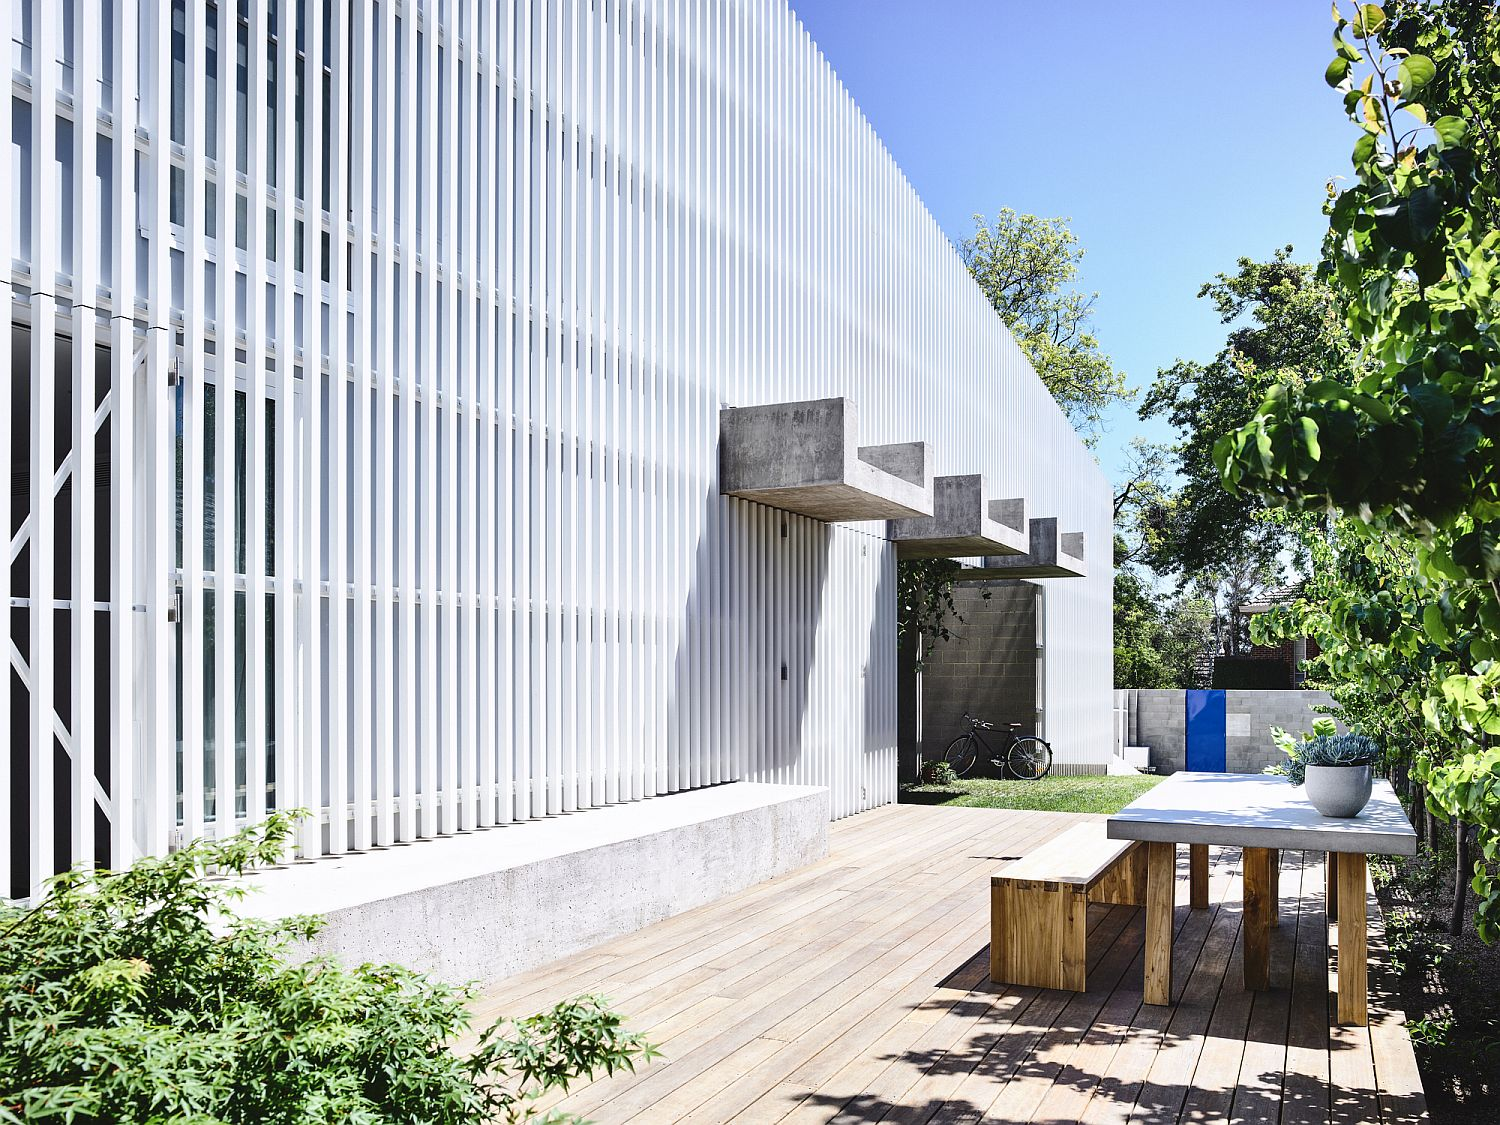 White metal grille shapes the street facade of this contemporary Aussie home